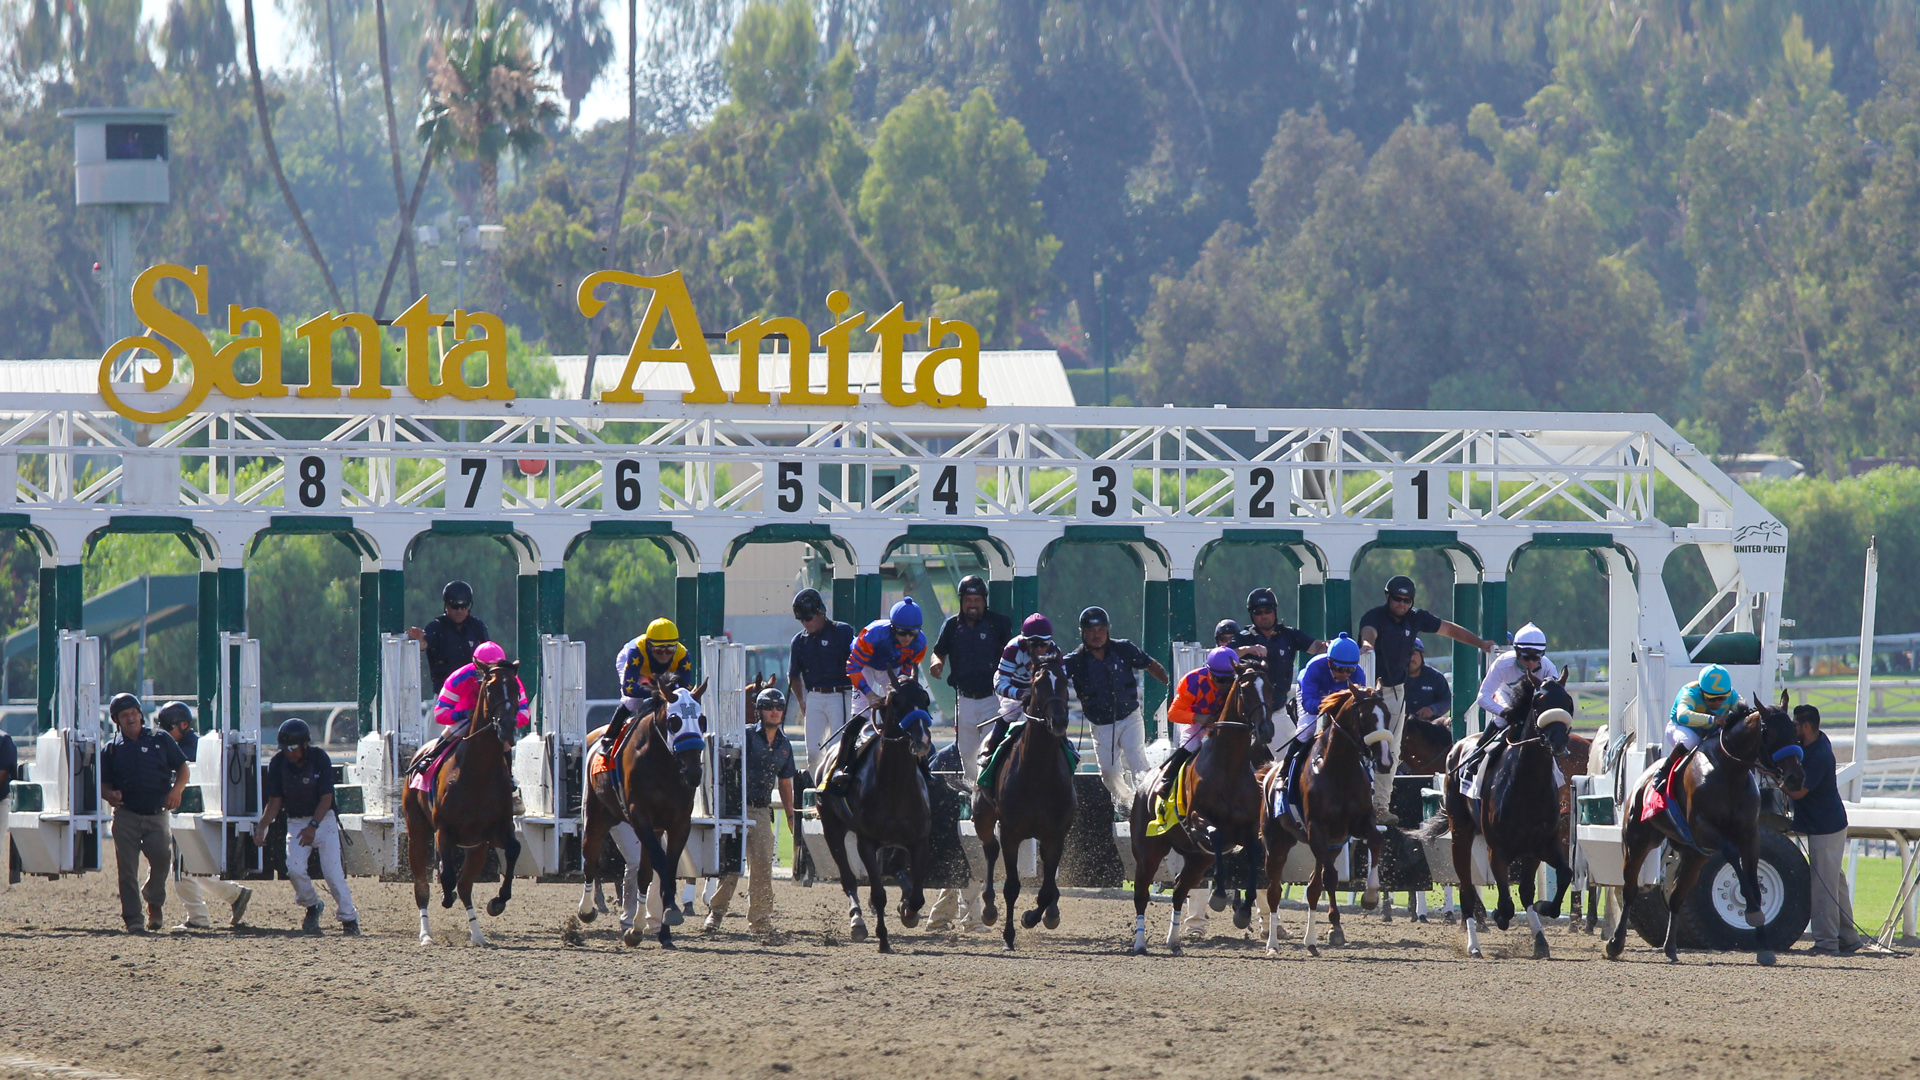 Jeff Siegel's Blog: Santa Anita Analysis for June 5, 2016